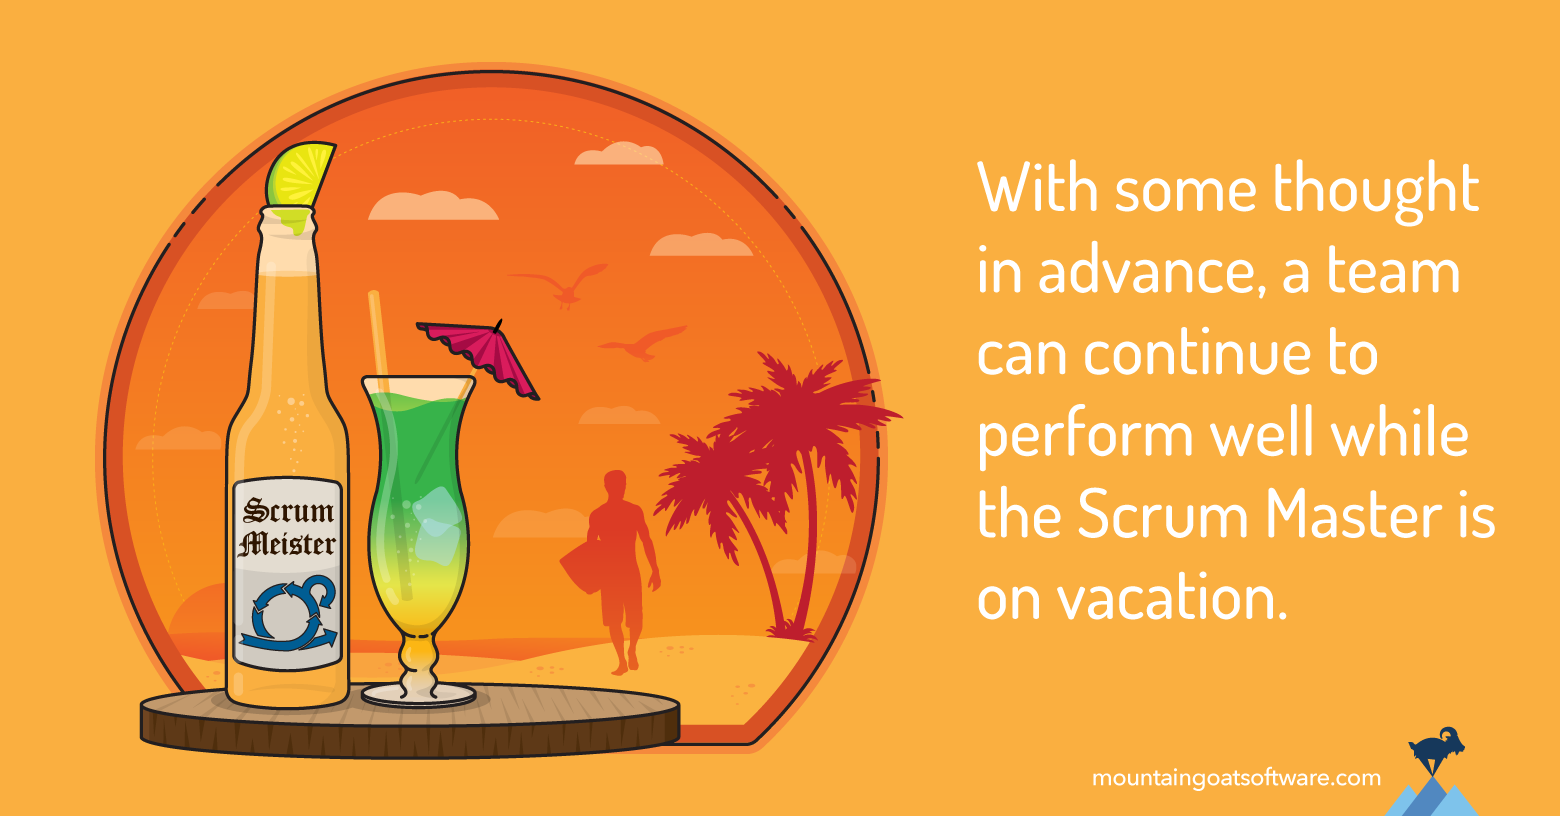 Four Things to Do Before the Scrum Master Goes on Vacation